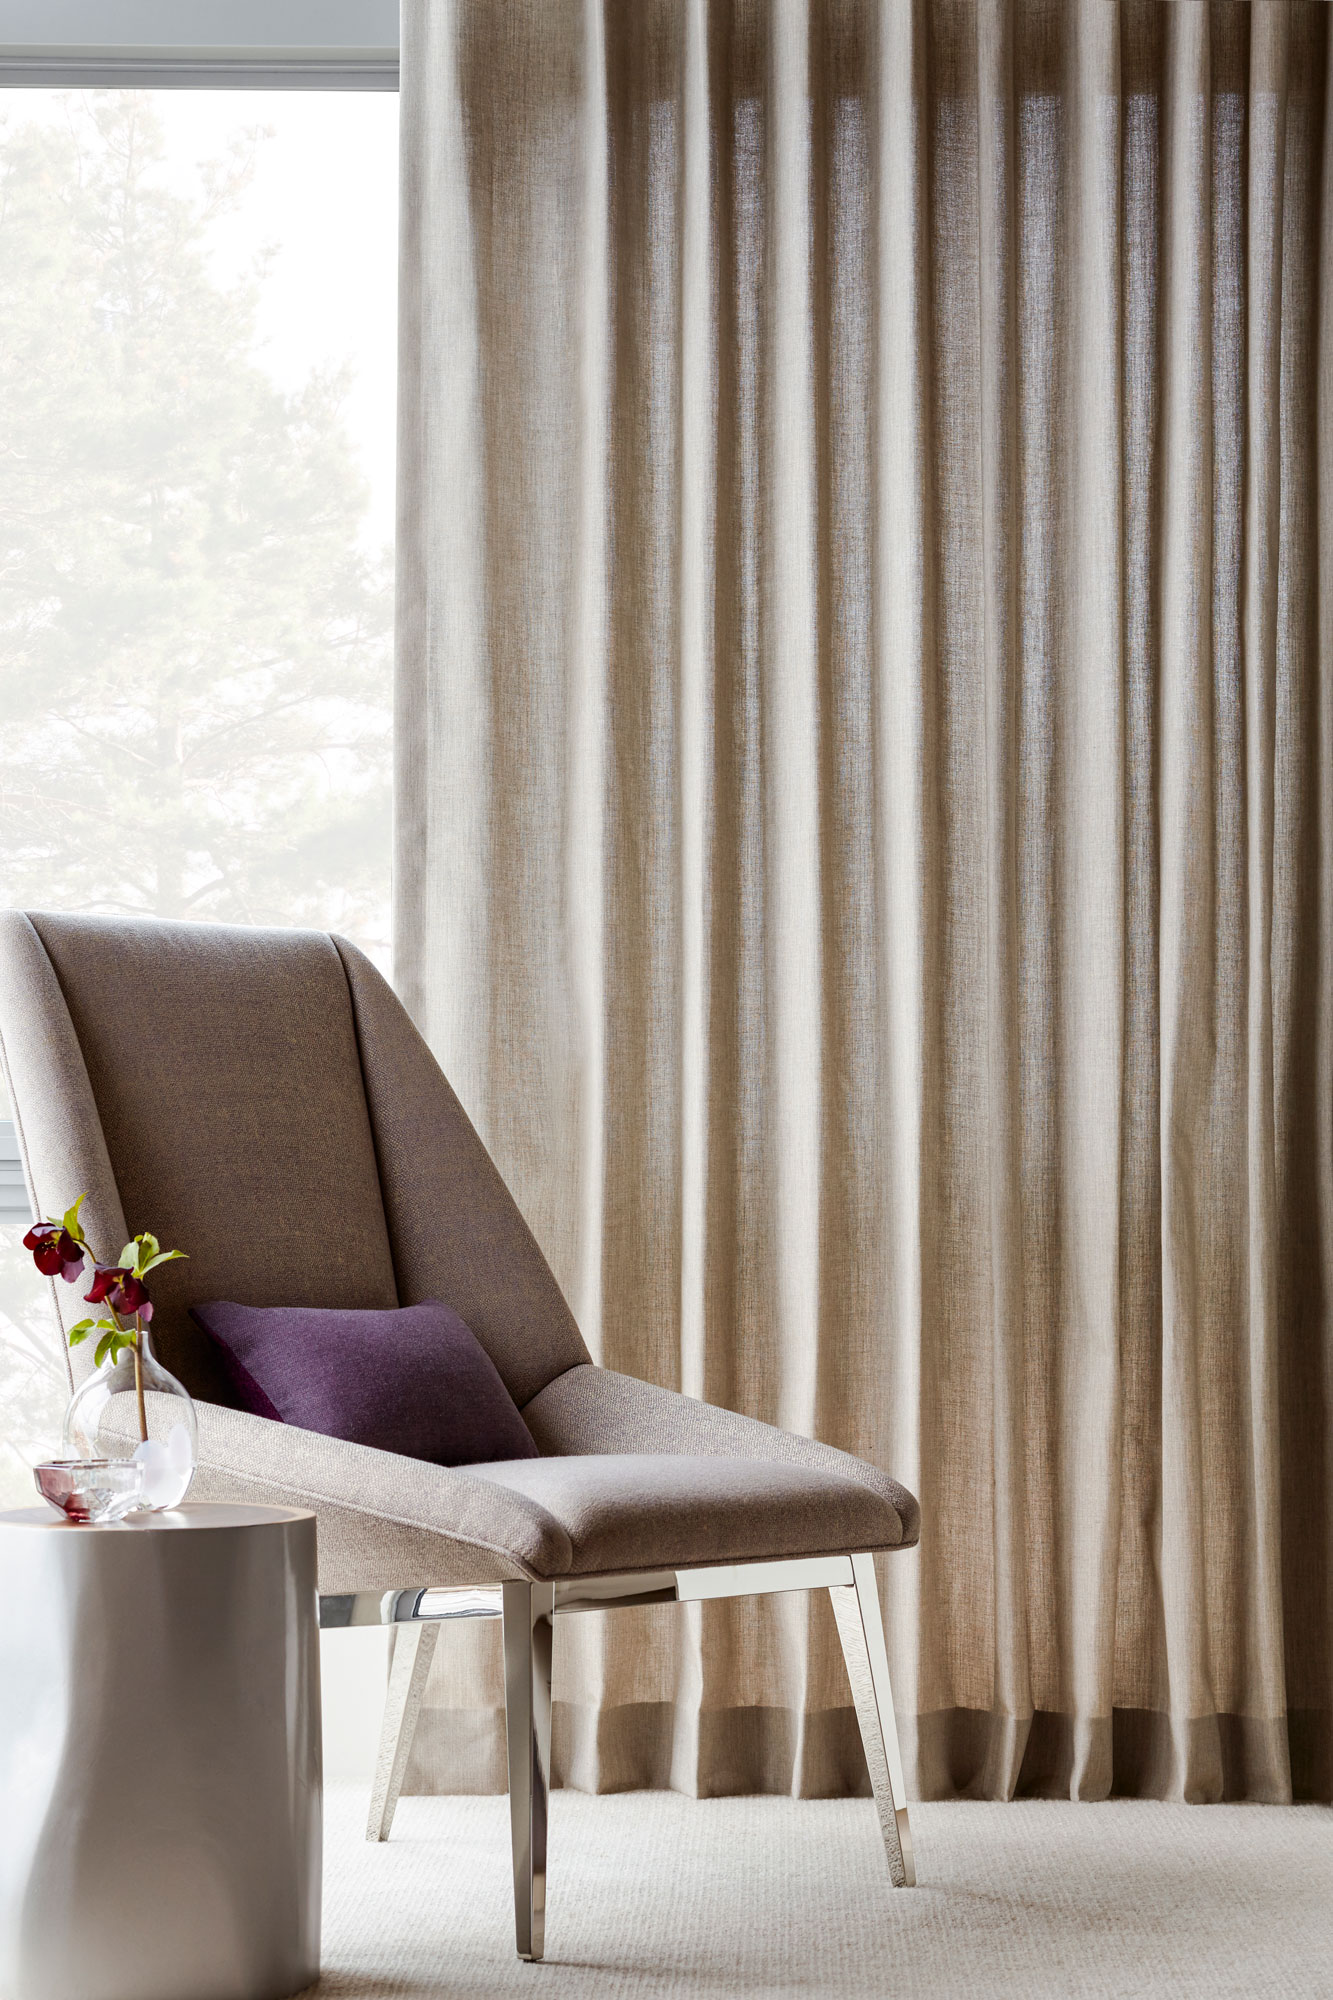 Detail of a neutral Sunbrella upholstered chair in the master bedroom, with neutral Sunbrella drapery from The Shade Store behind it.